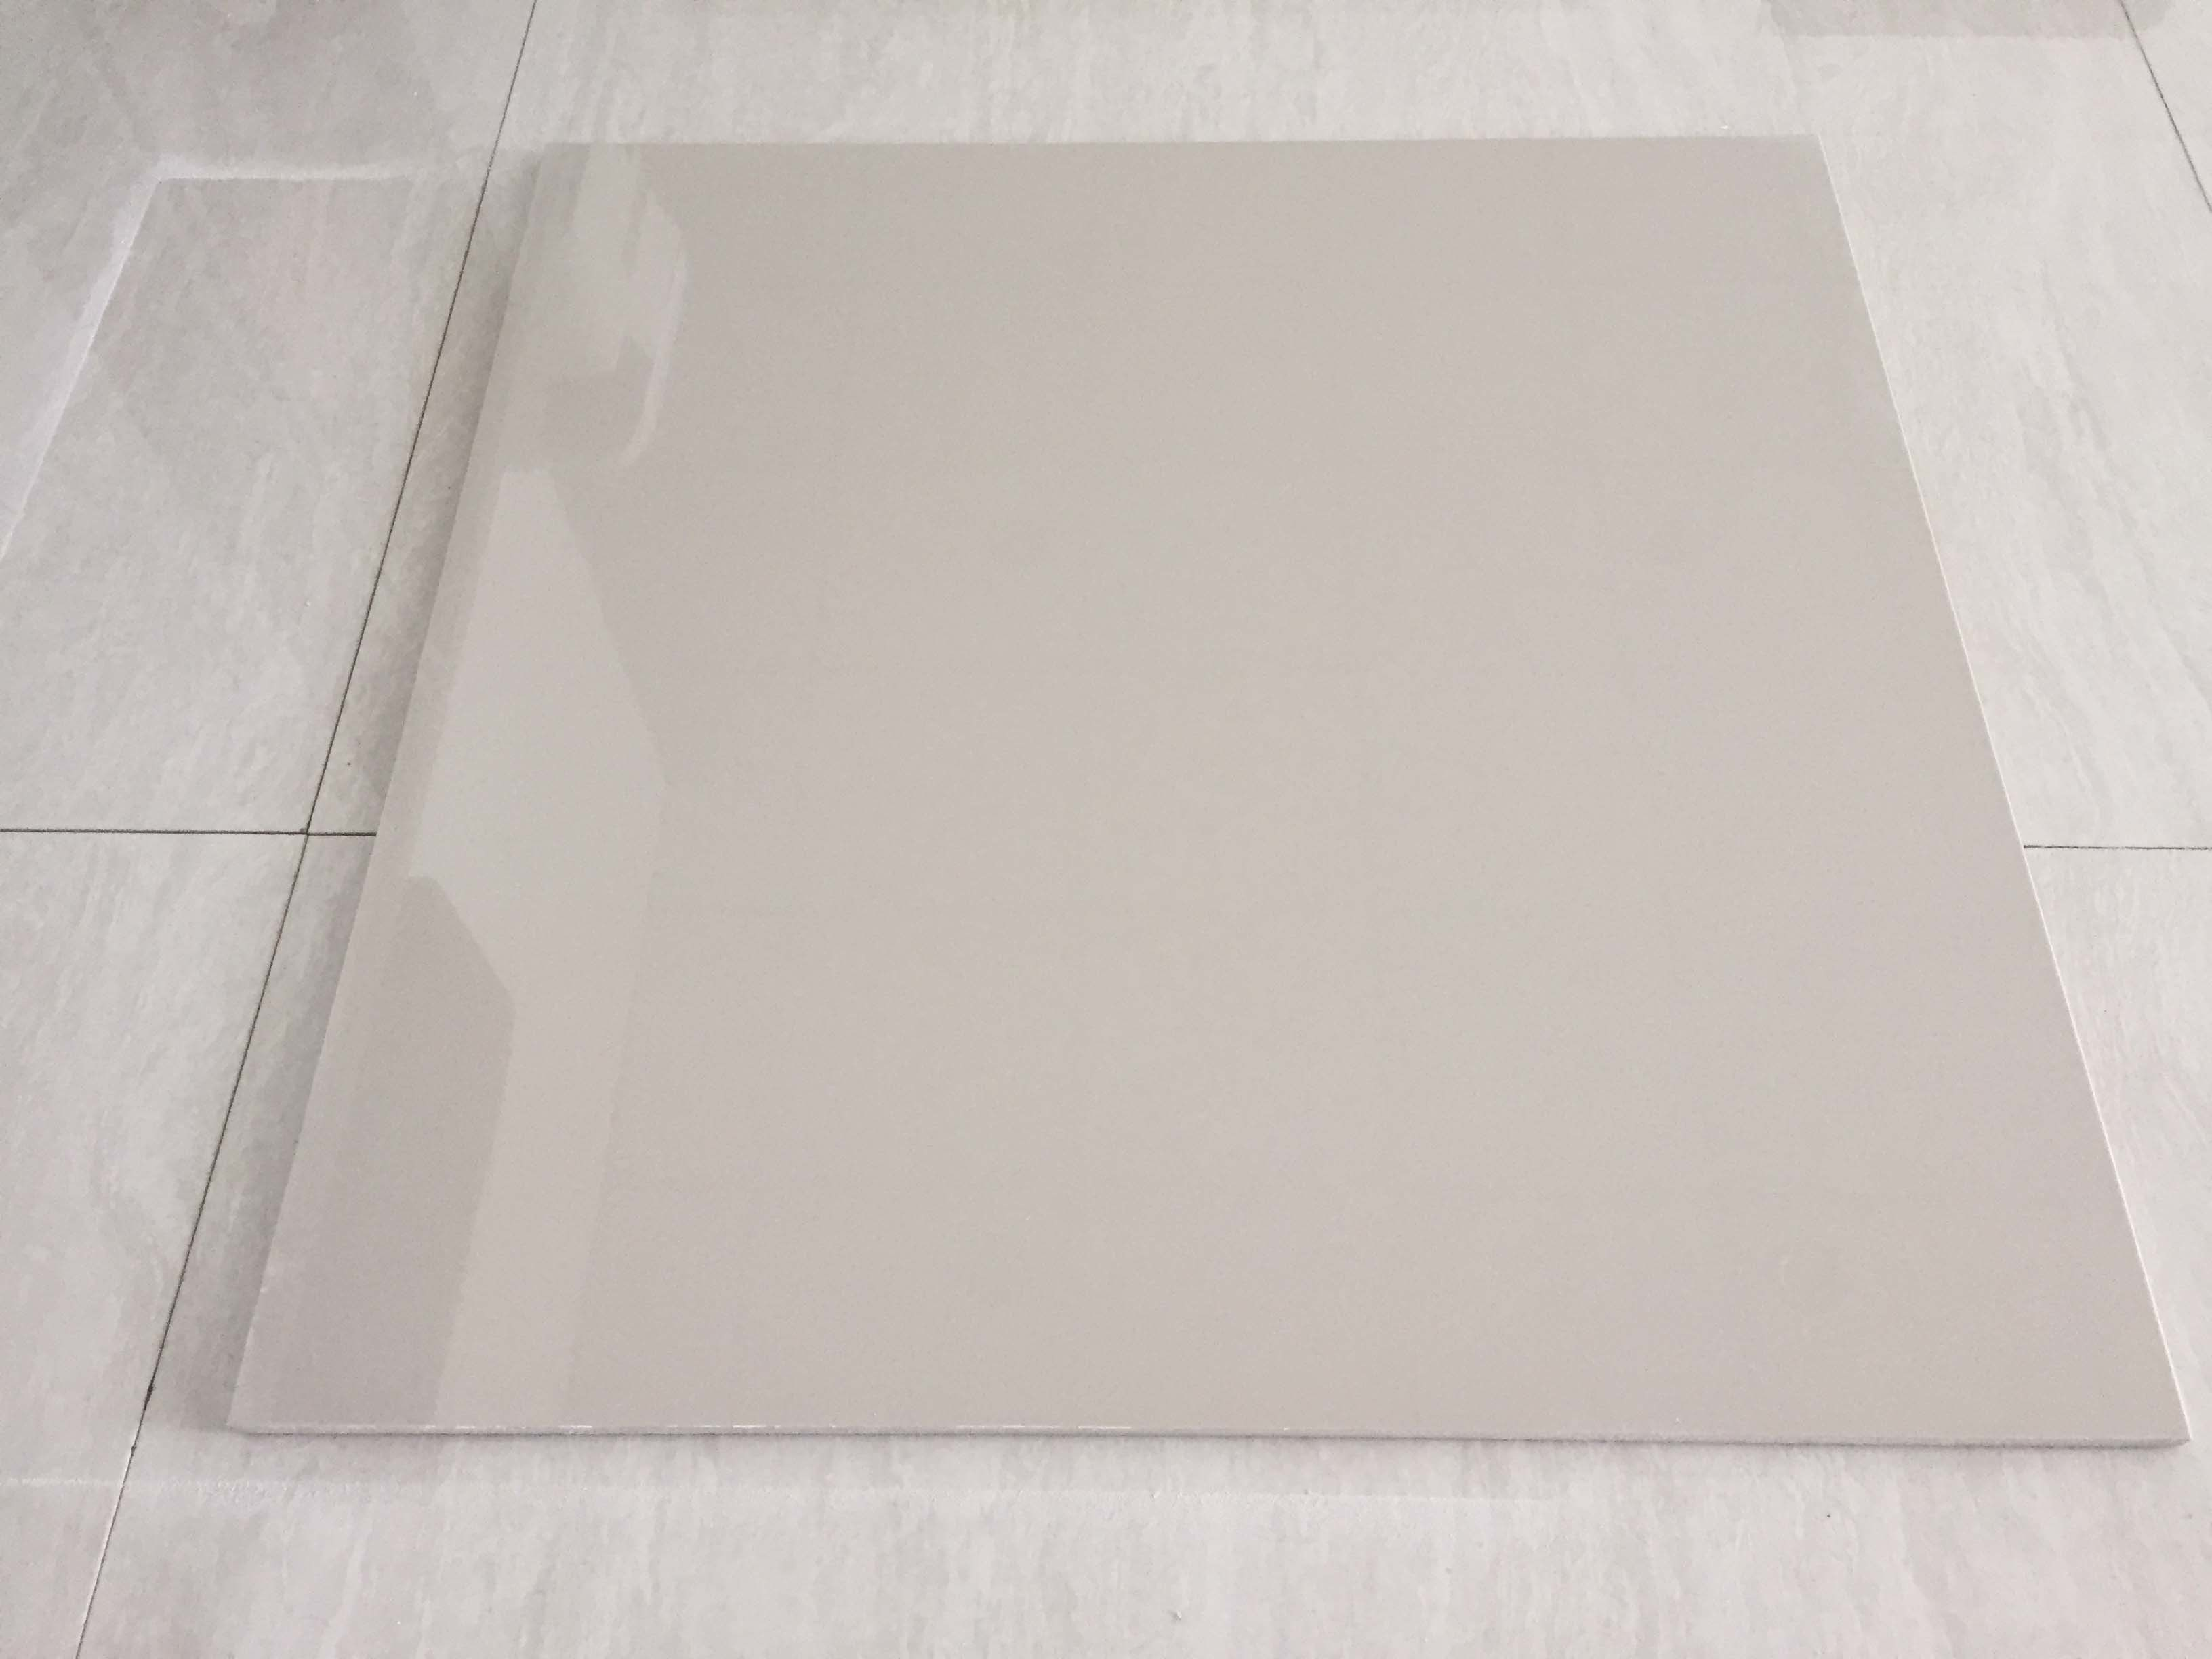 China Promotion Foshan Ceramic Ivory White Polished Porcelain Floor Tile P600